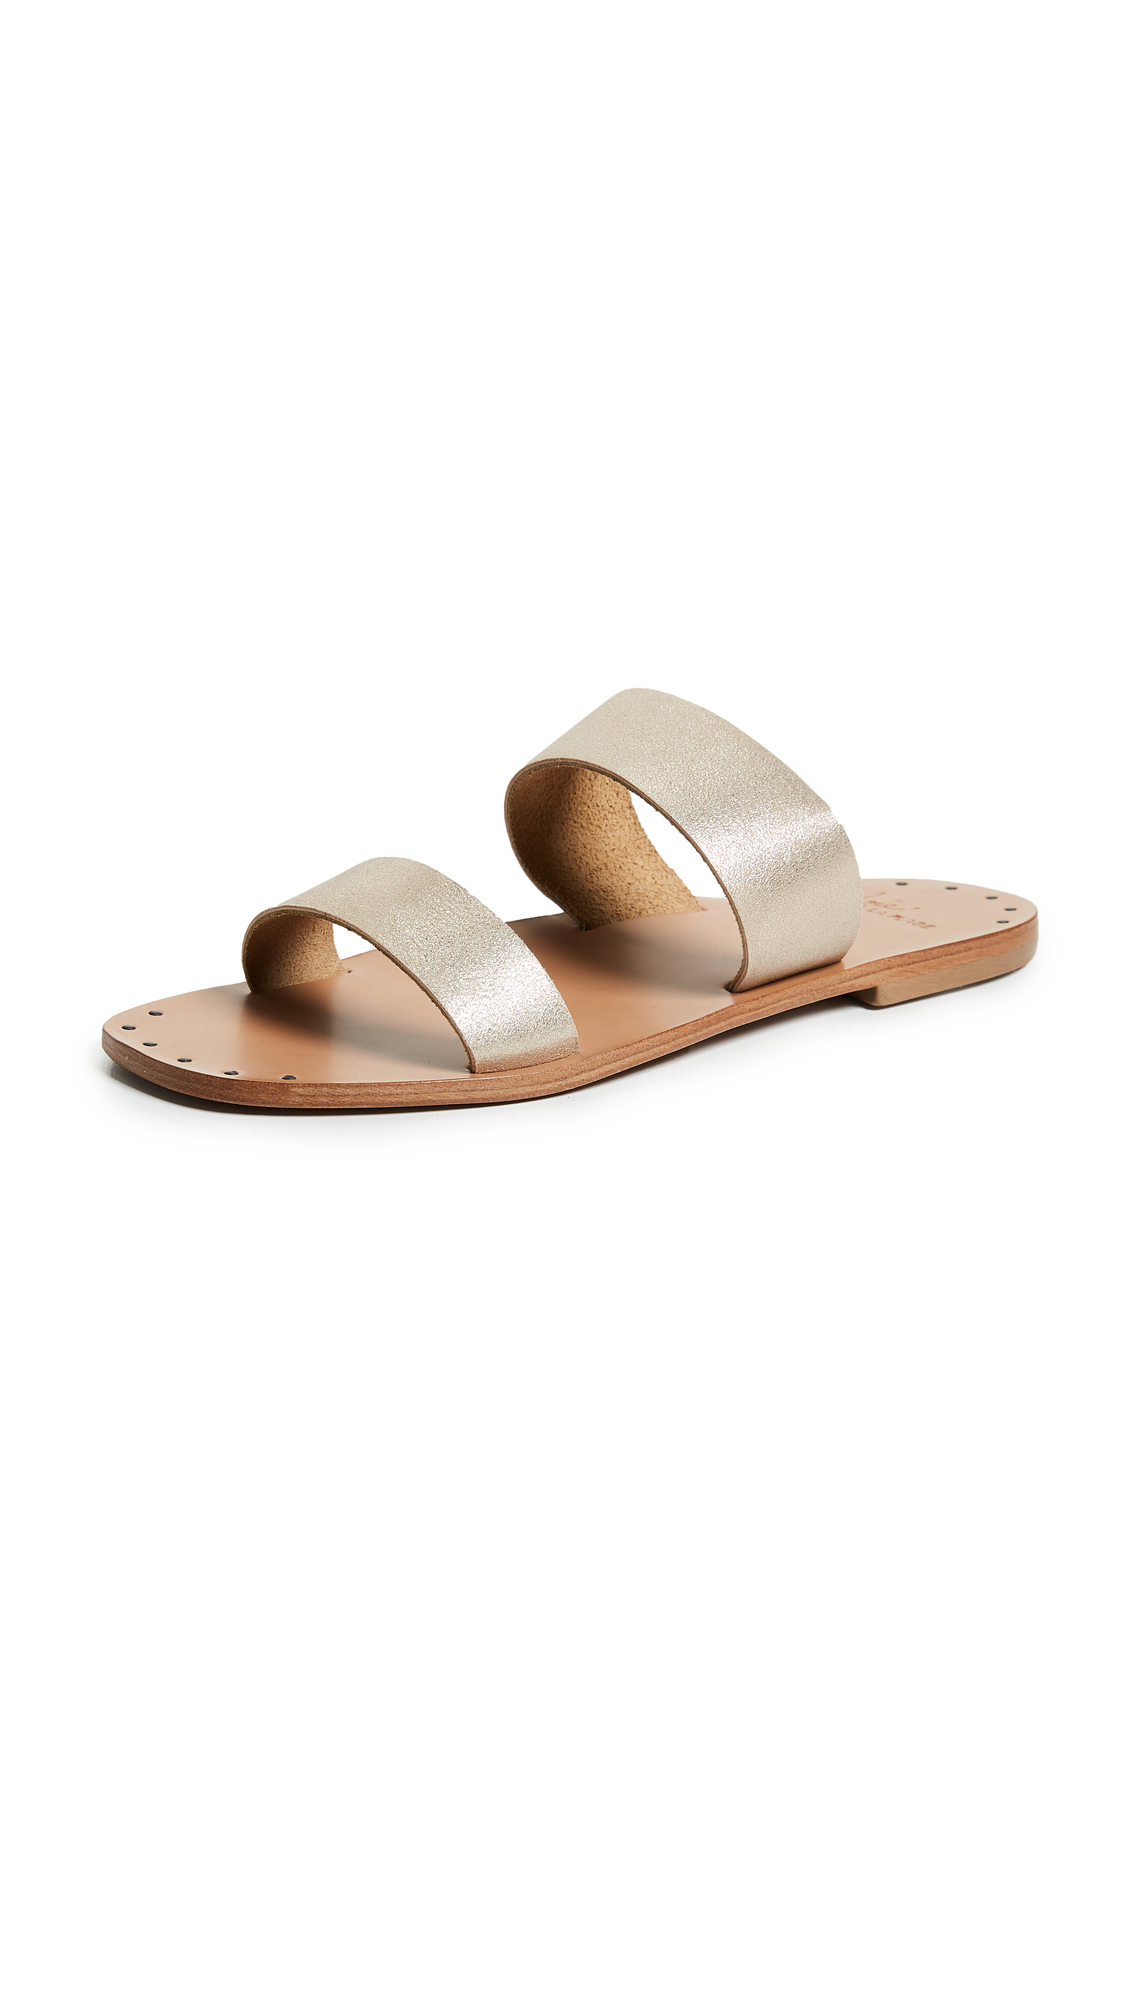 Joie Bannerly Two Band Slides - Blush